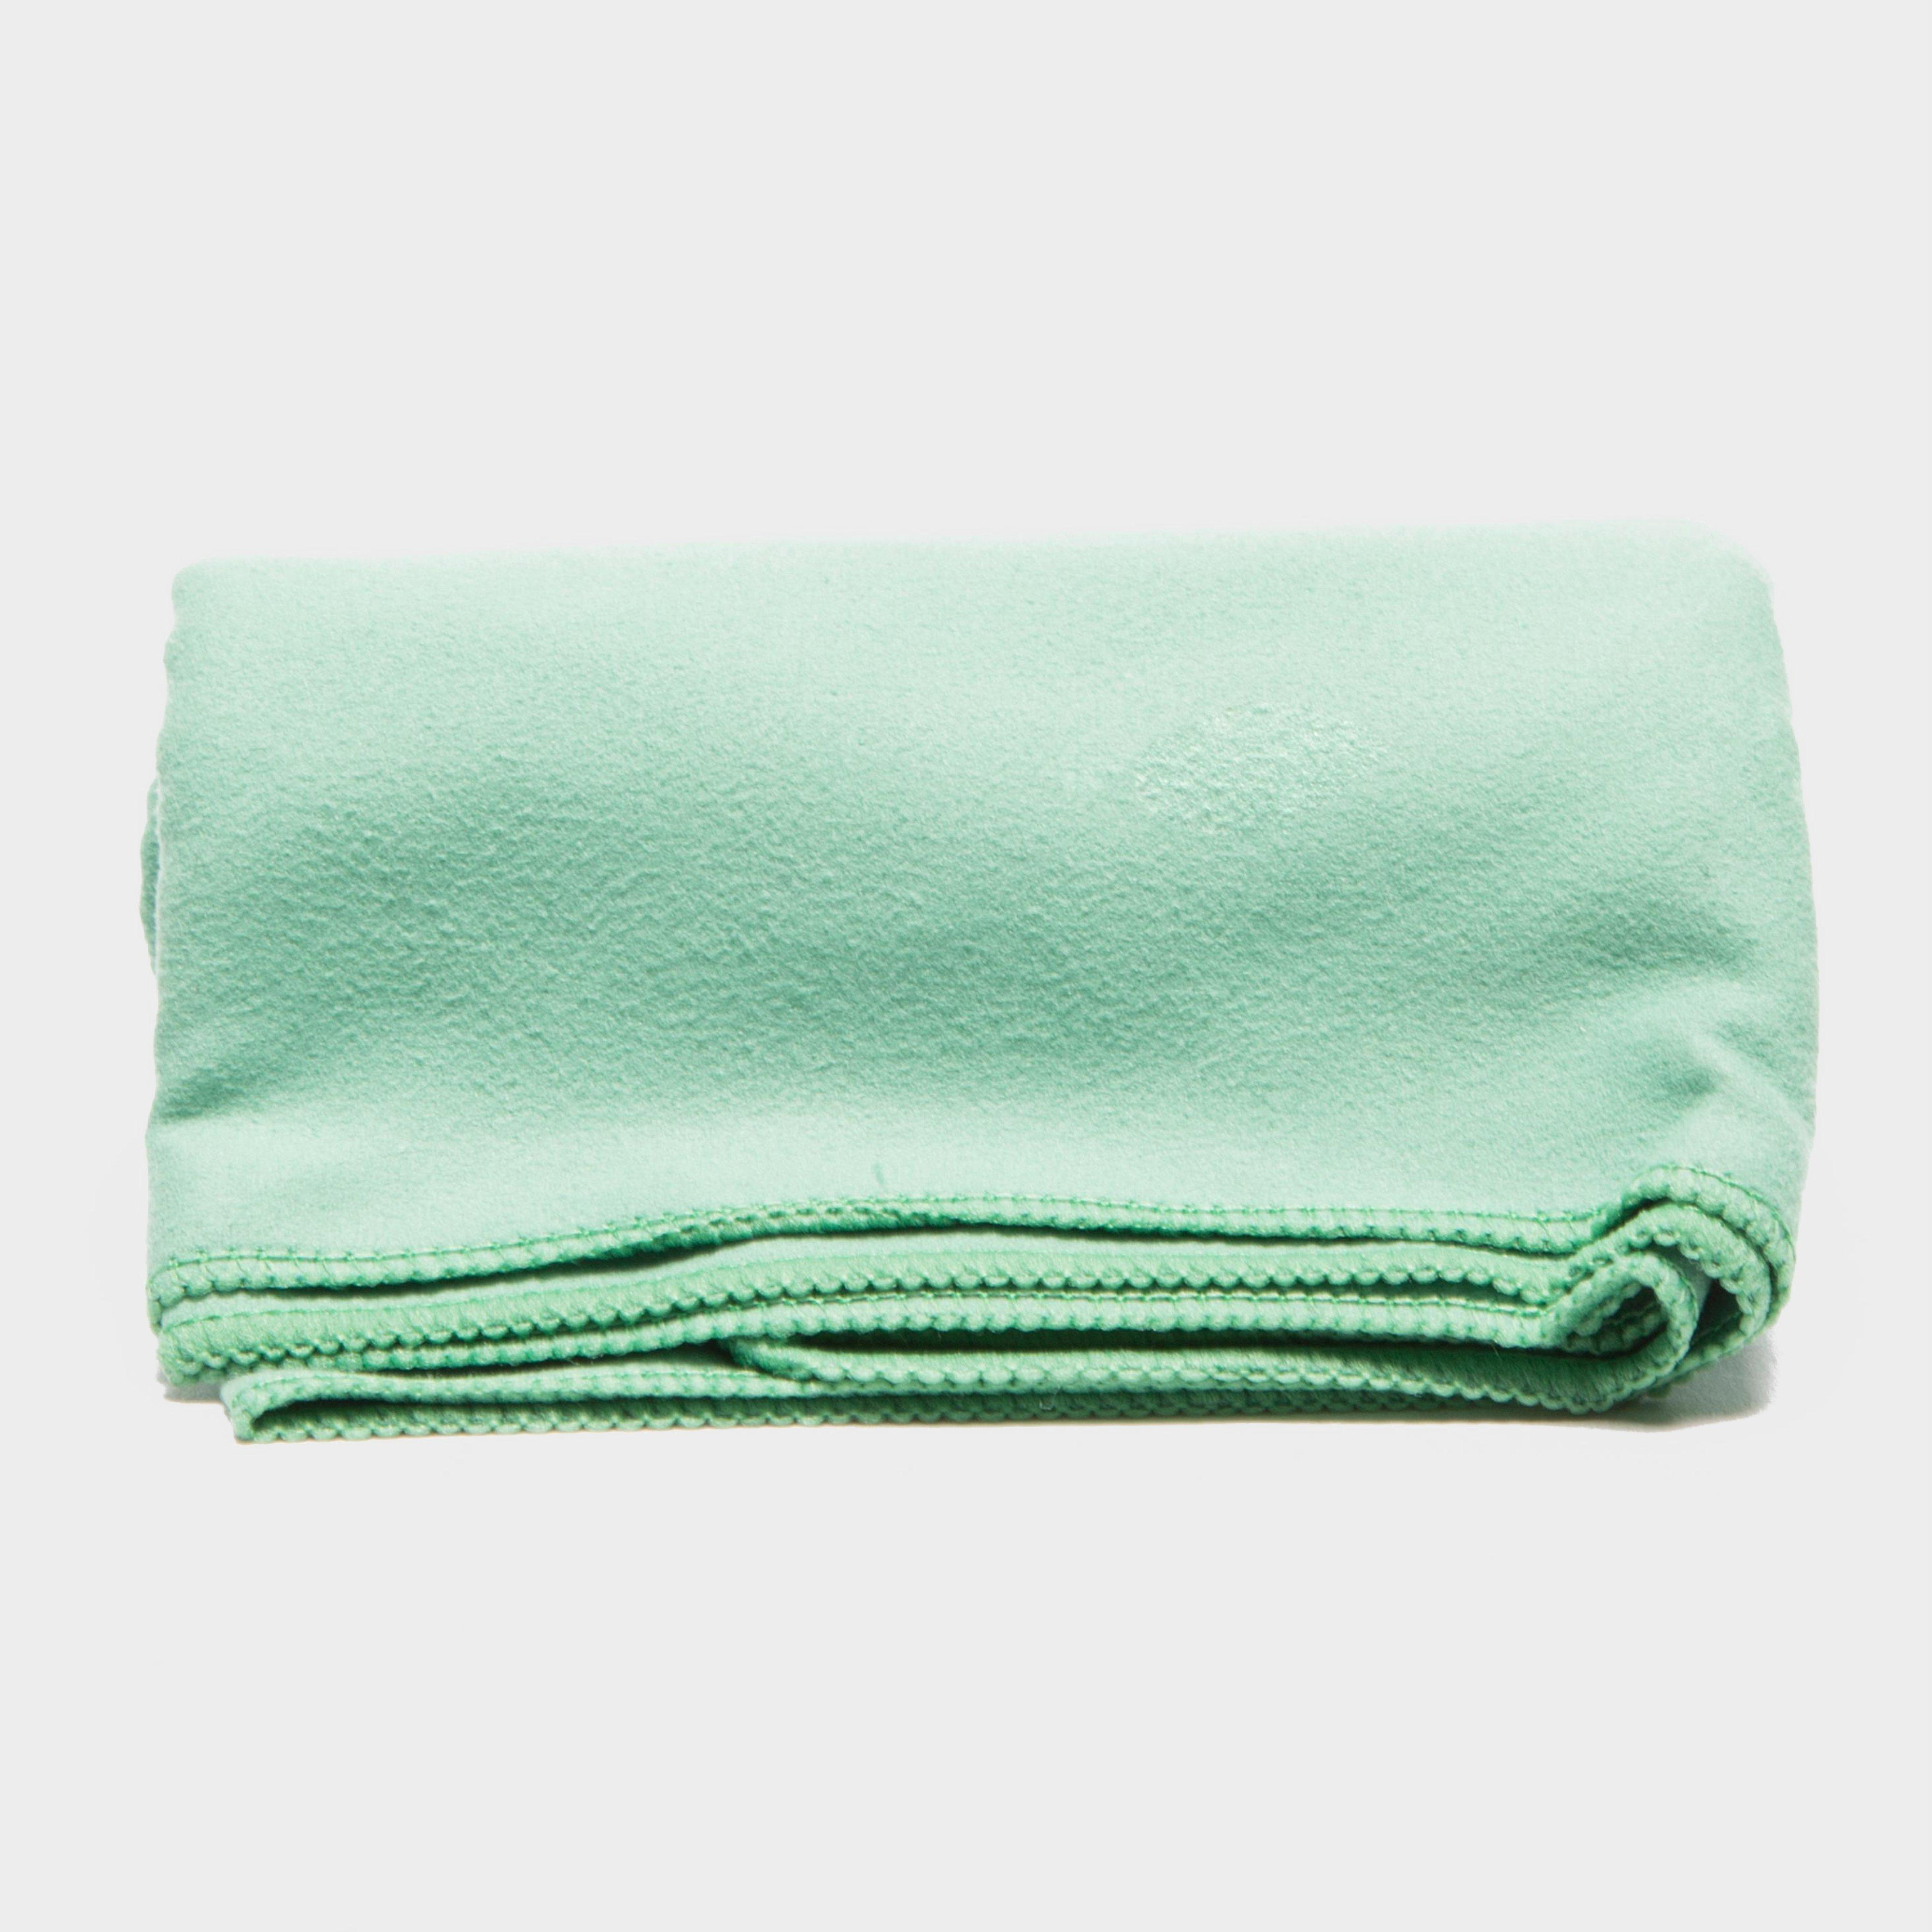 Eurohike Microfibre Suede Twill Travel Towel Small Green